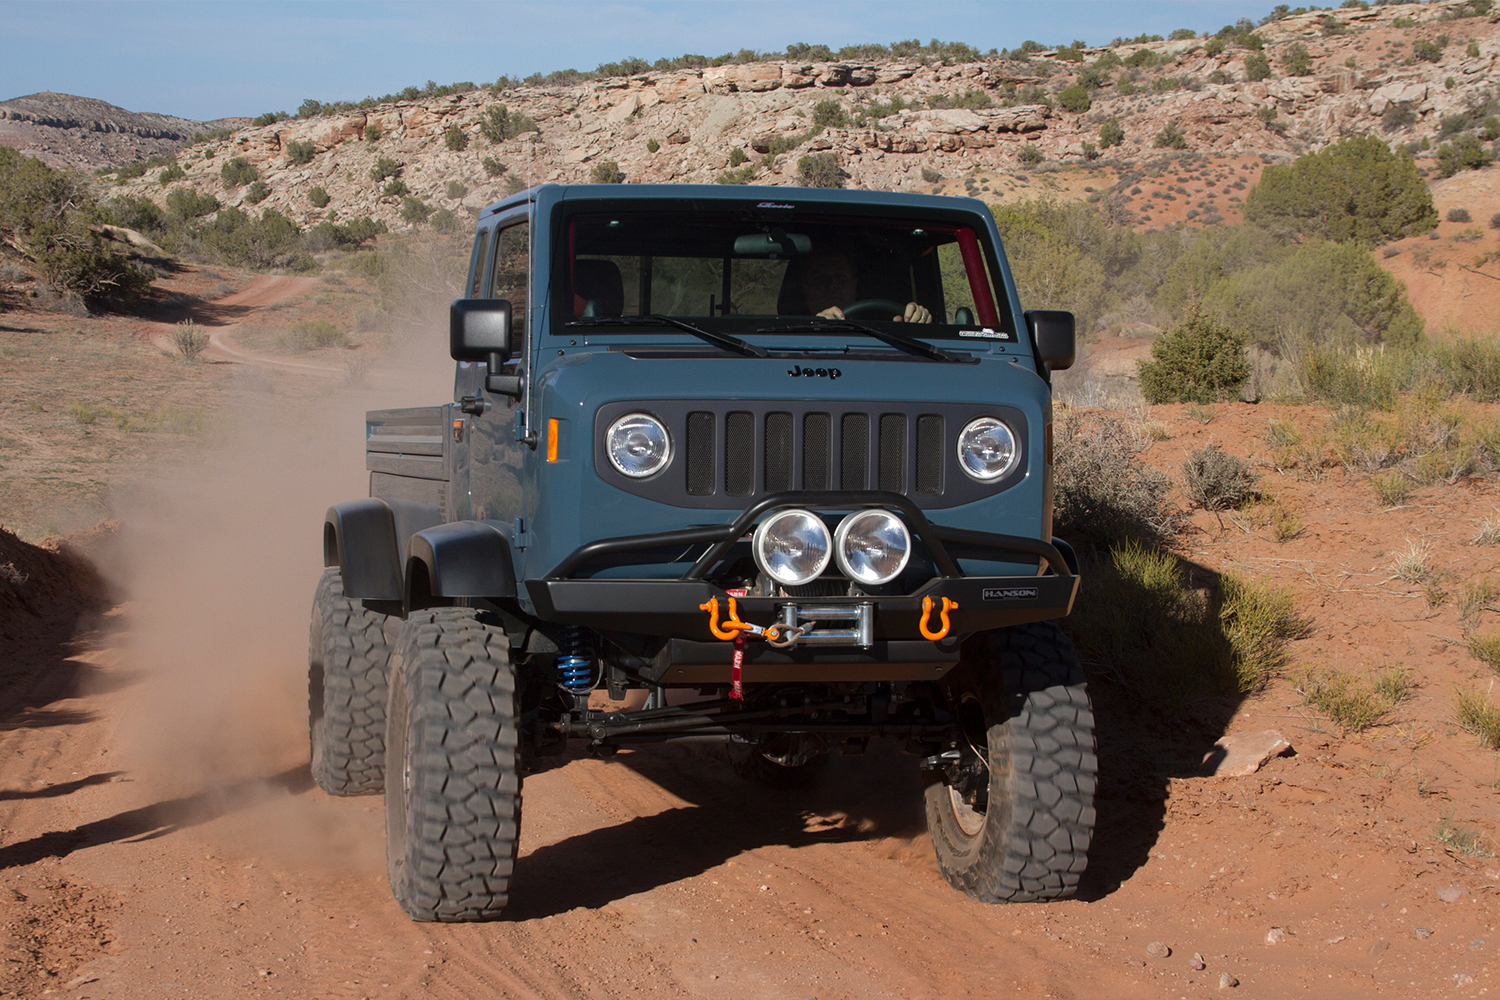 The Jeep Mighty FC cab-over-engine pickup truck driving in Moab